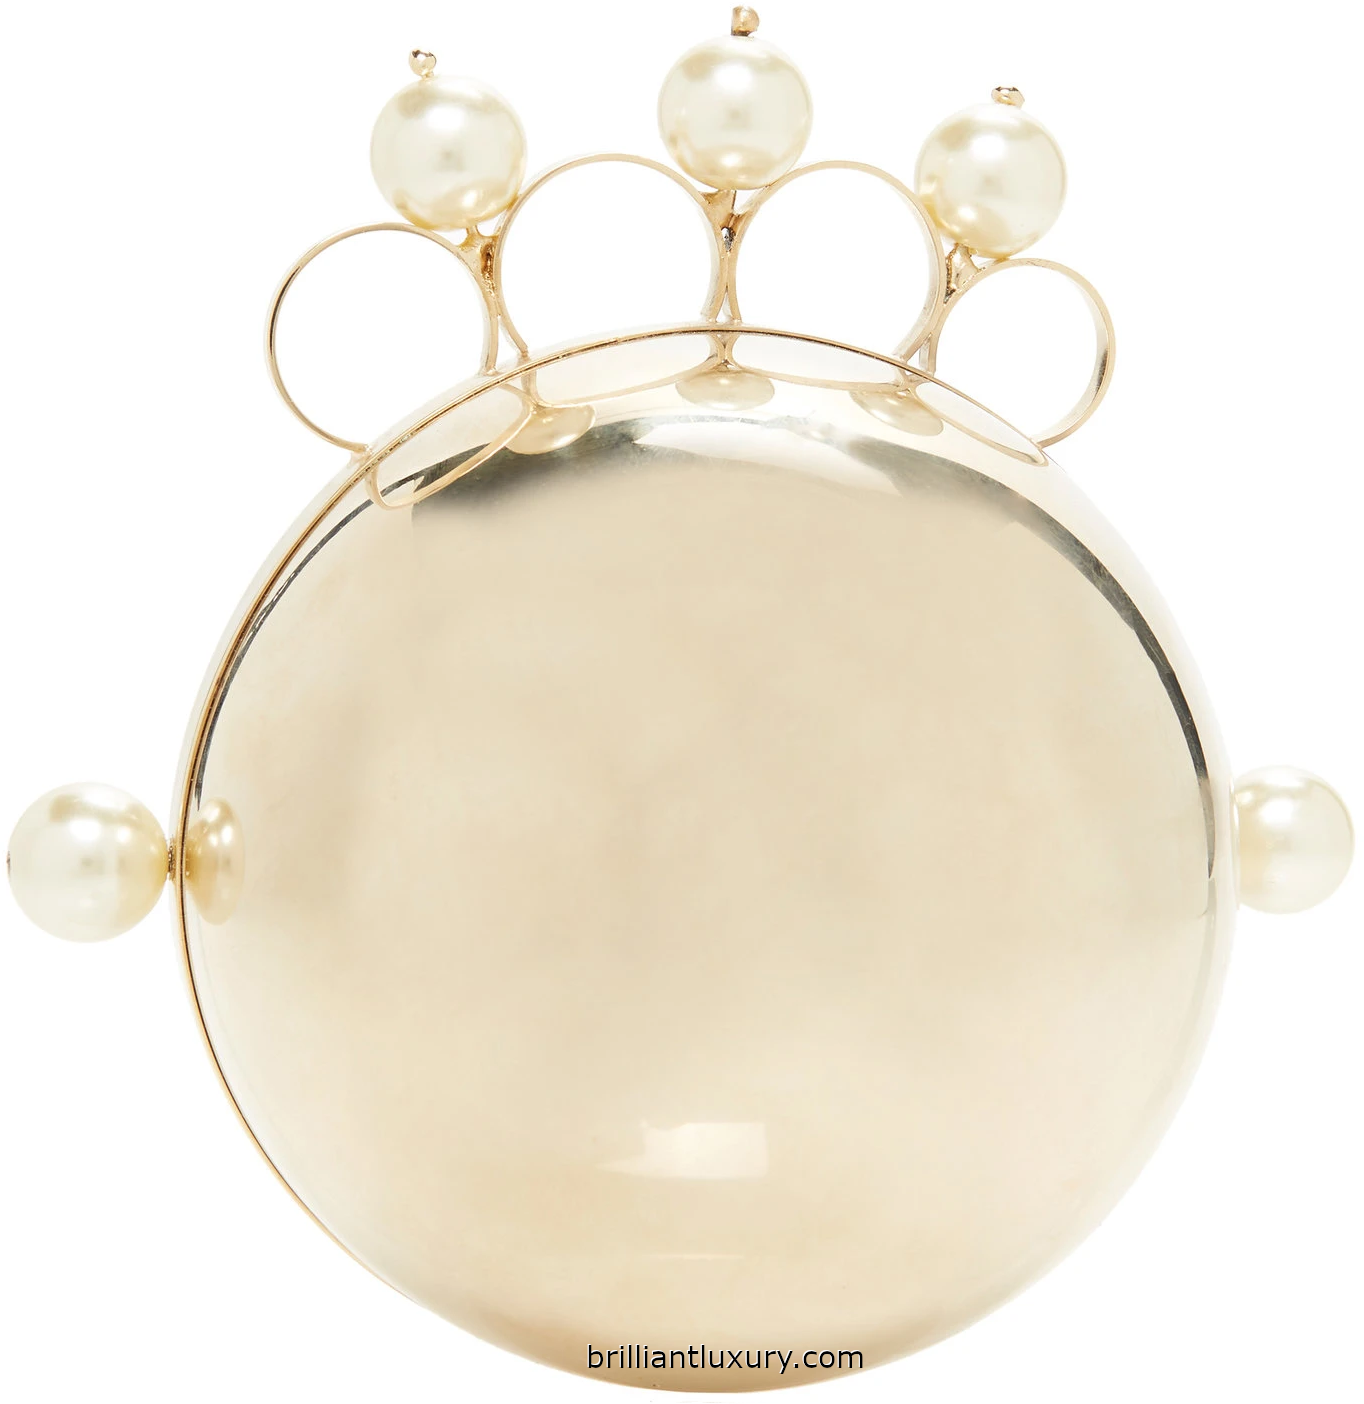 Rosantica Minnie gold-tone faux pearl-embellished clutch